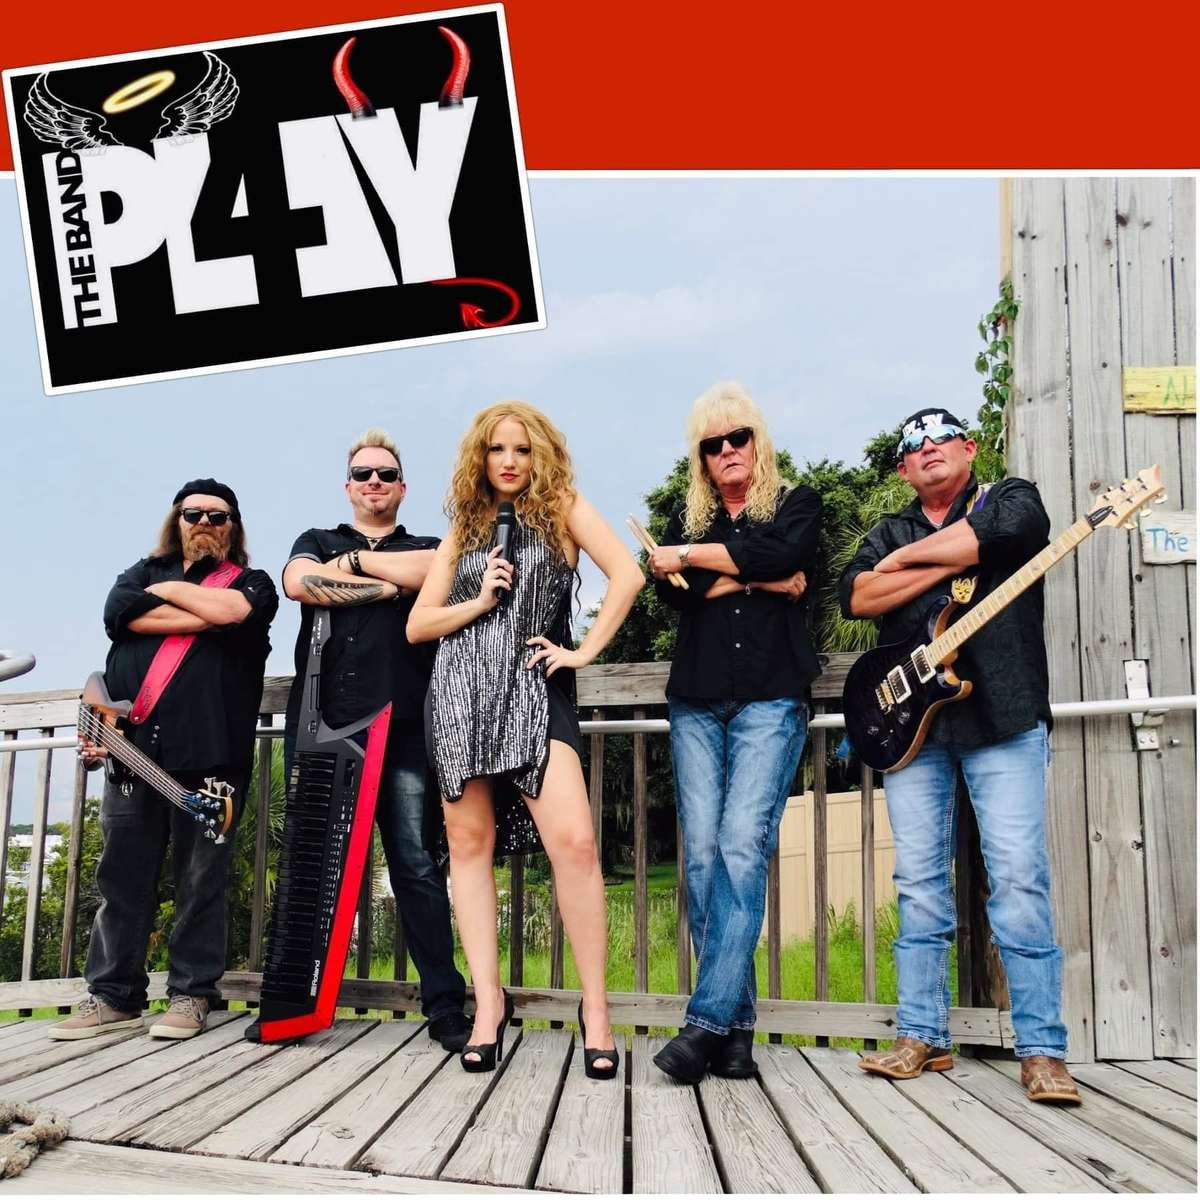 The Band 4play